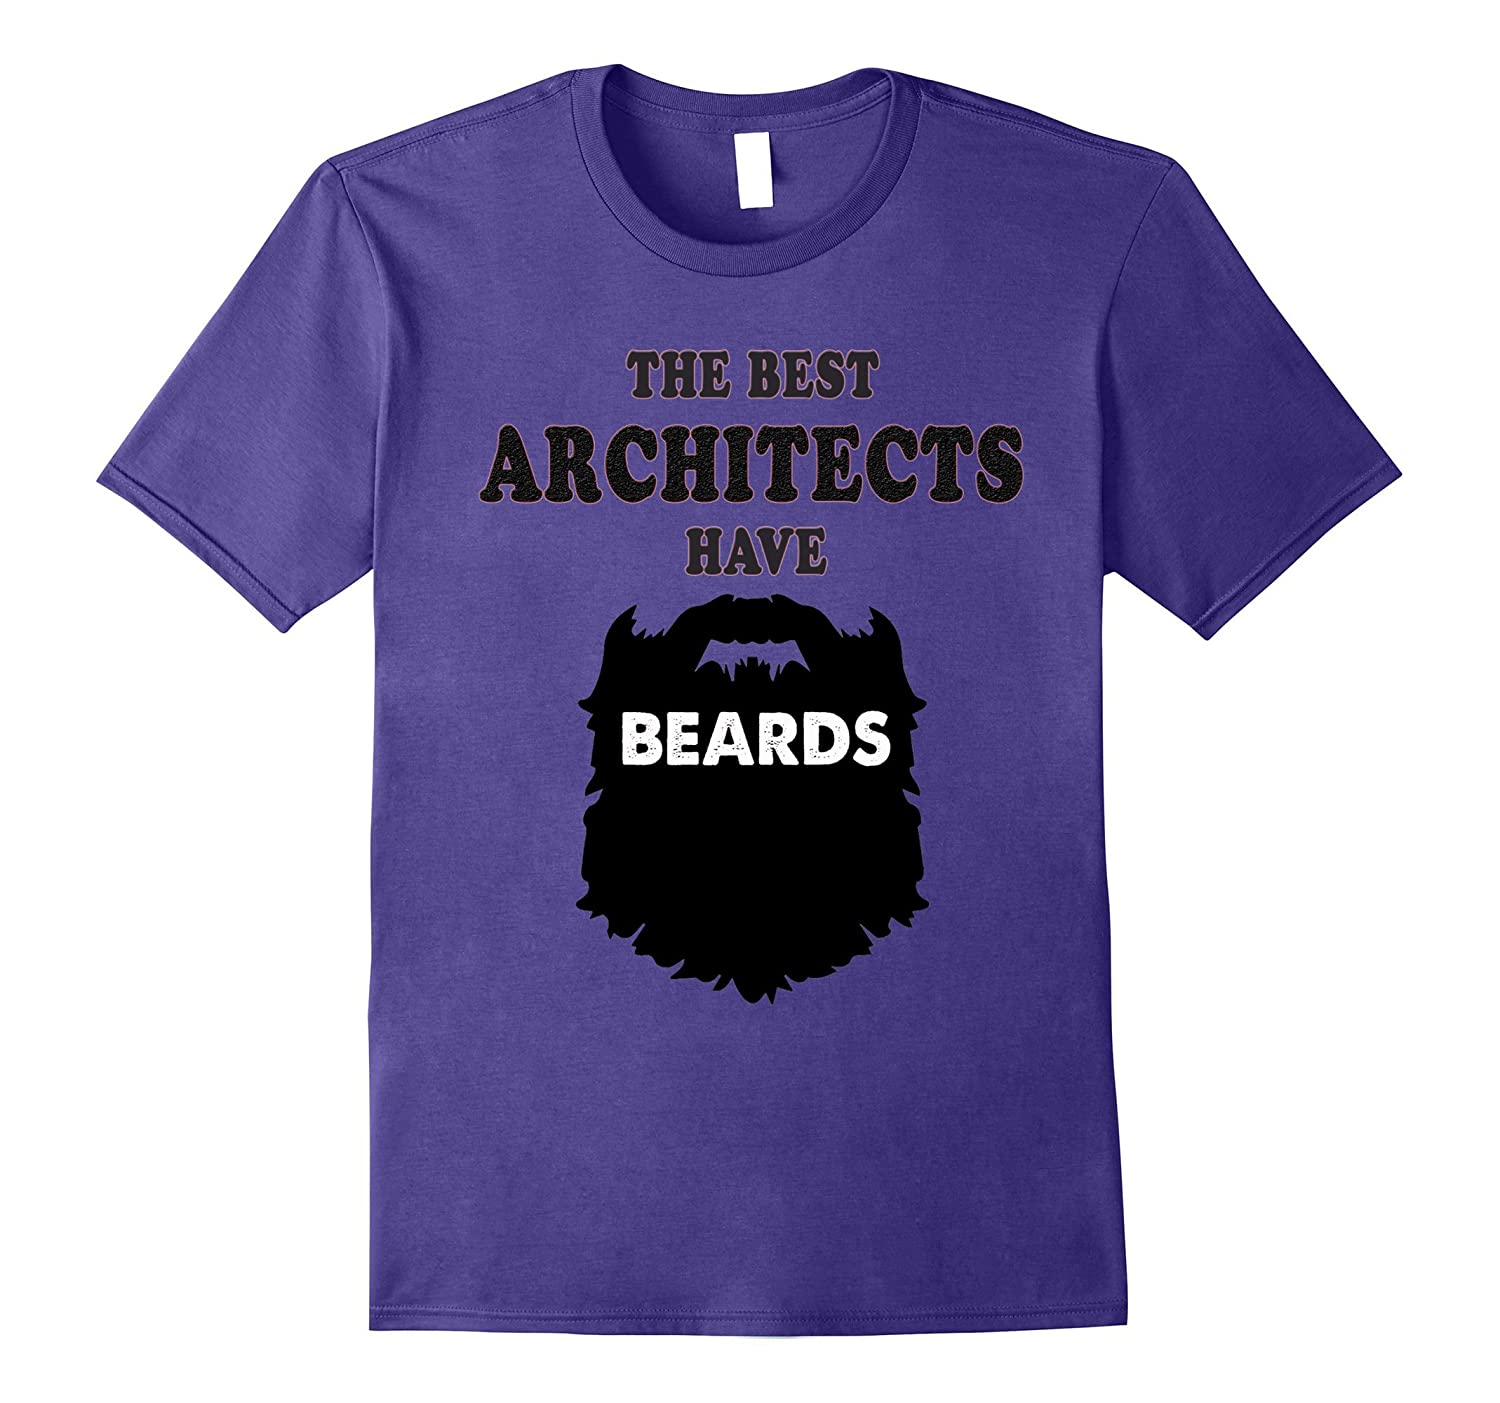 Best Architects Have Beards Gift Tees Shirt Pl Theteejob